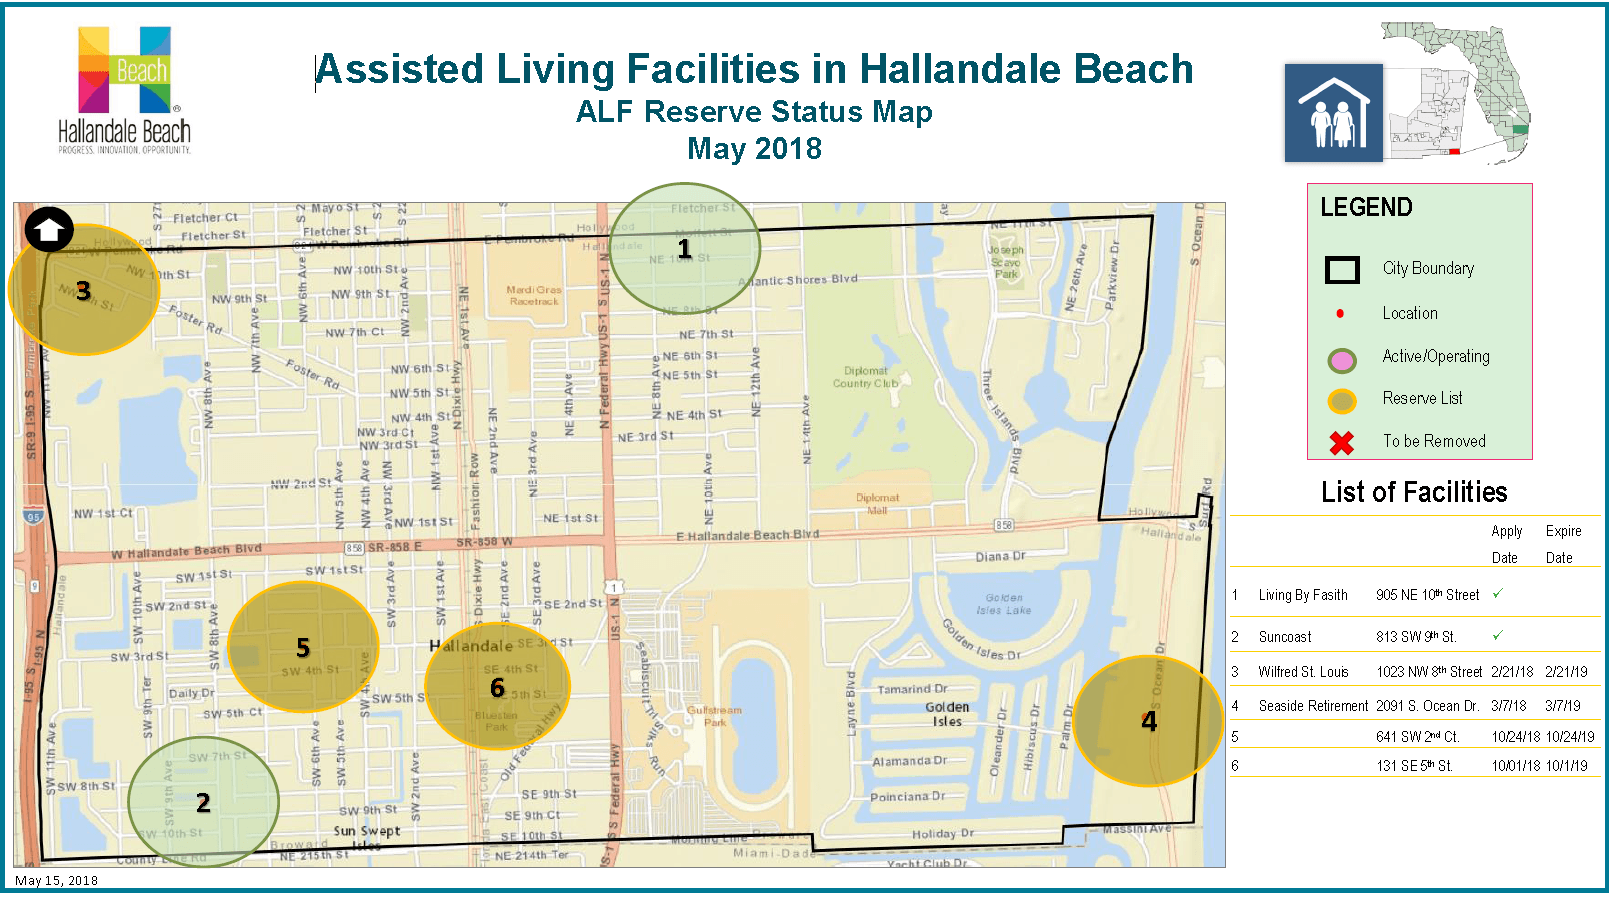 Assisted Living Facilities Status Map